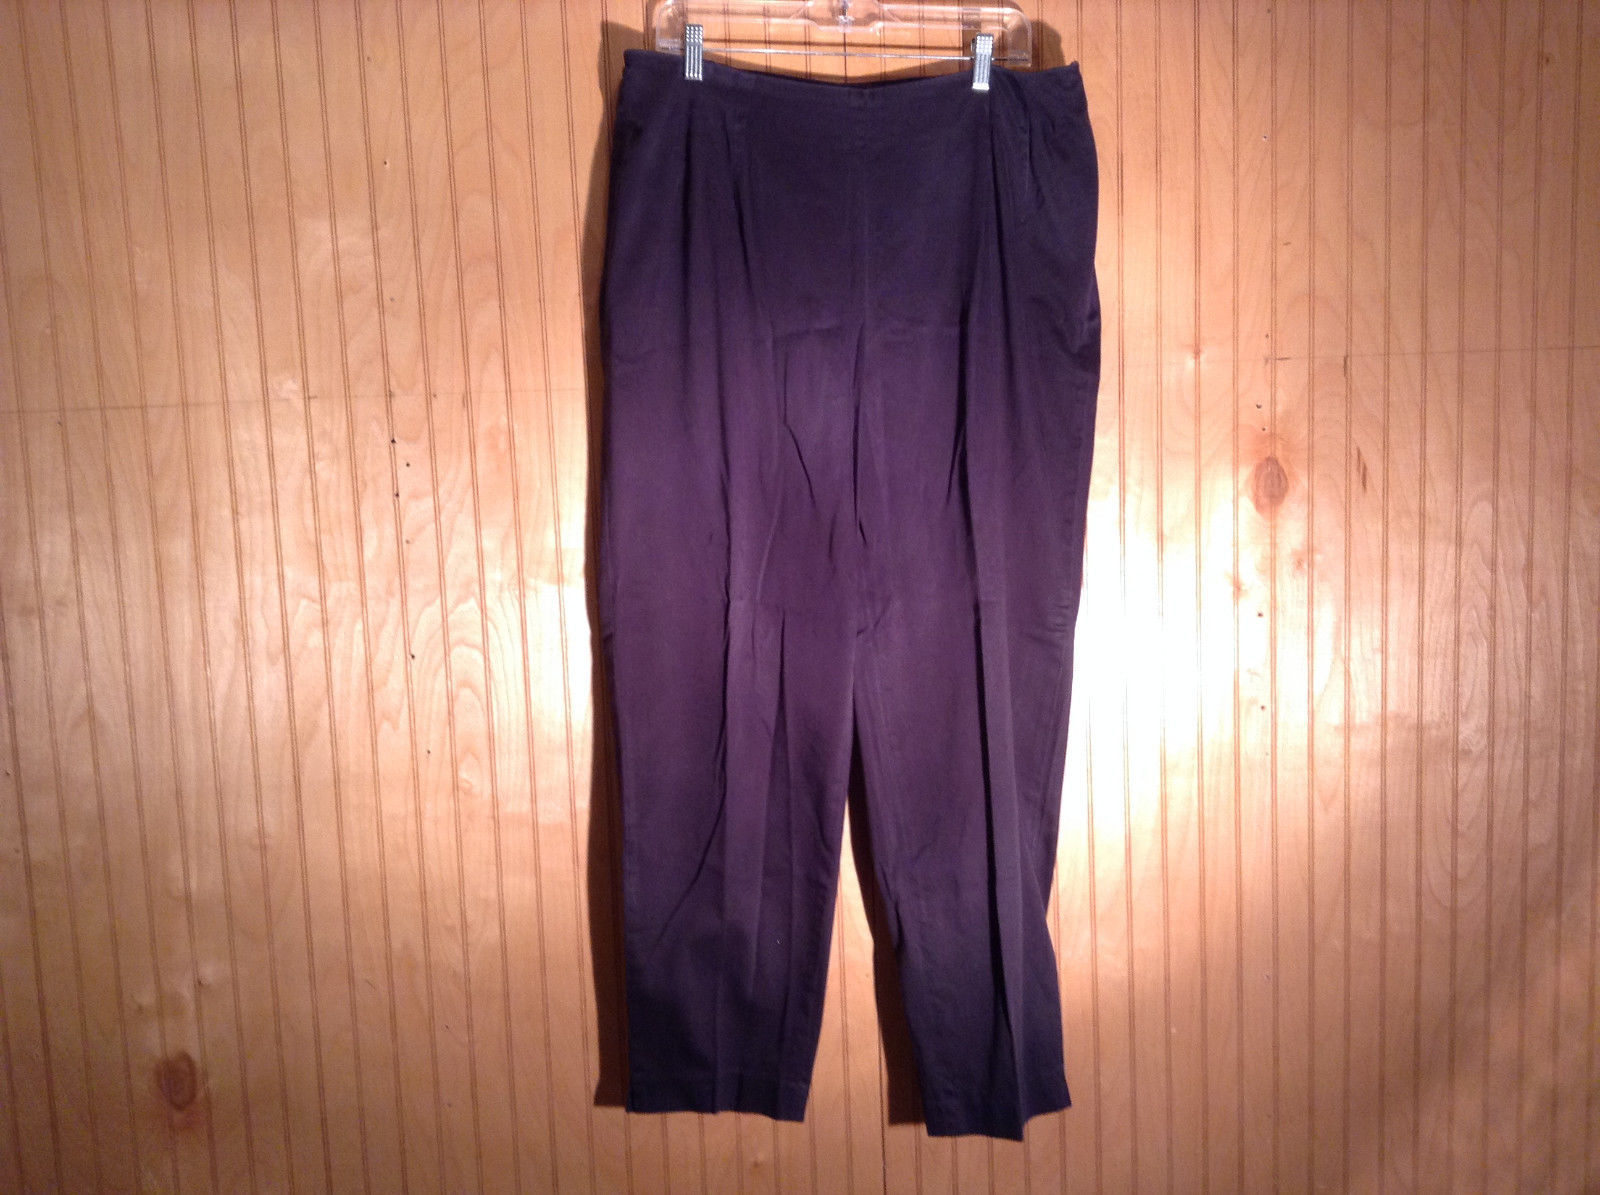 Dark Blue Comfortable Pants witih Stretchy Waist by Talbots Size 18W No Pockets